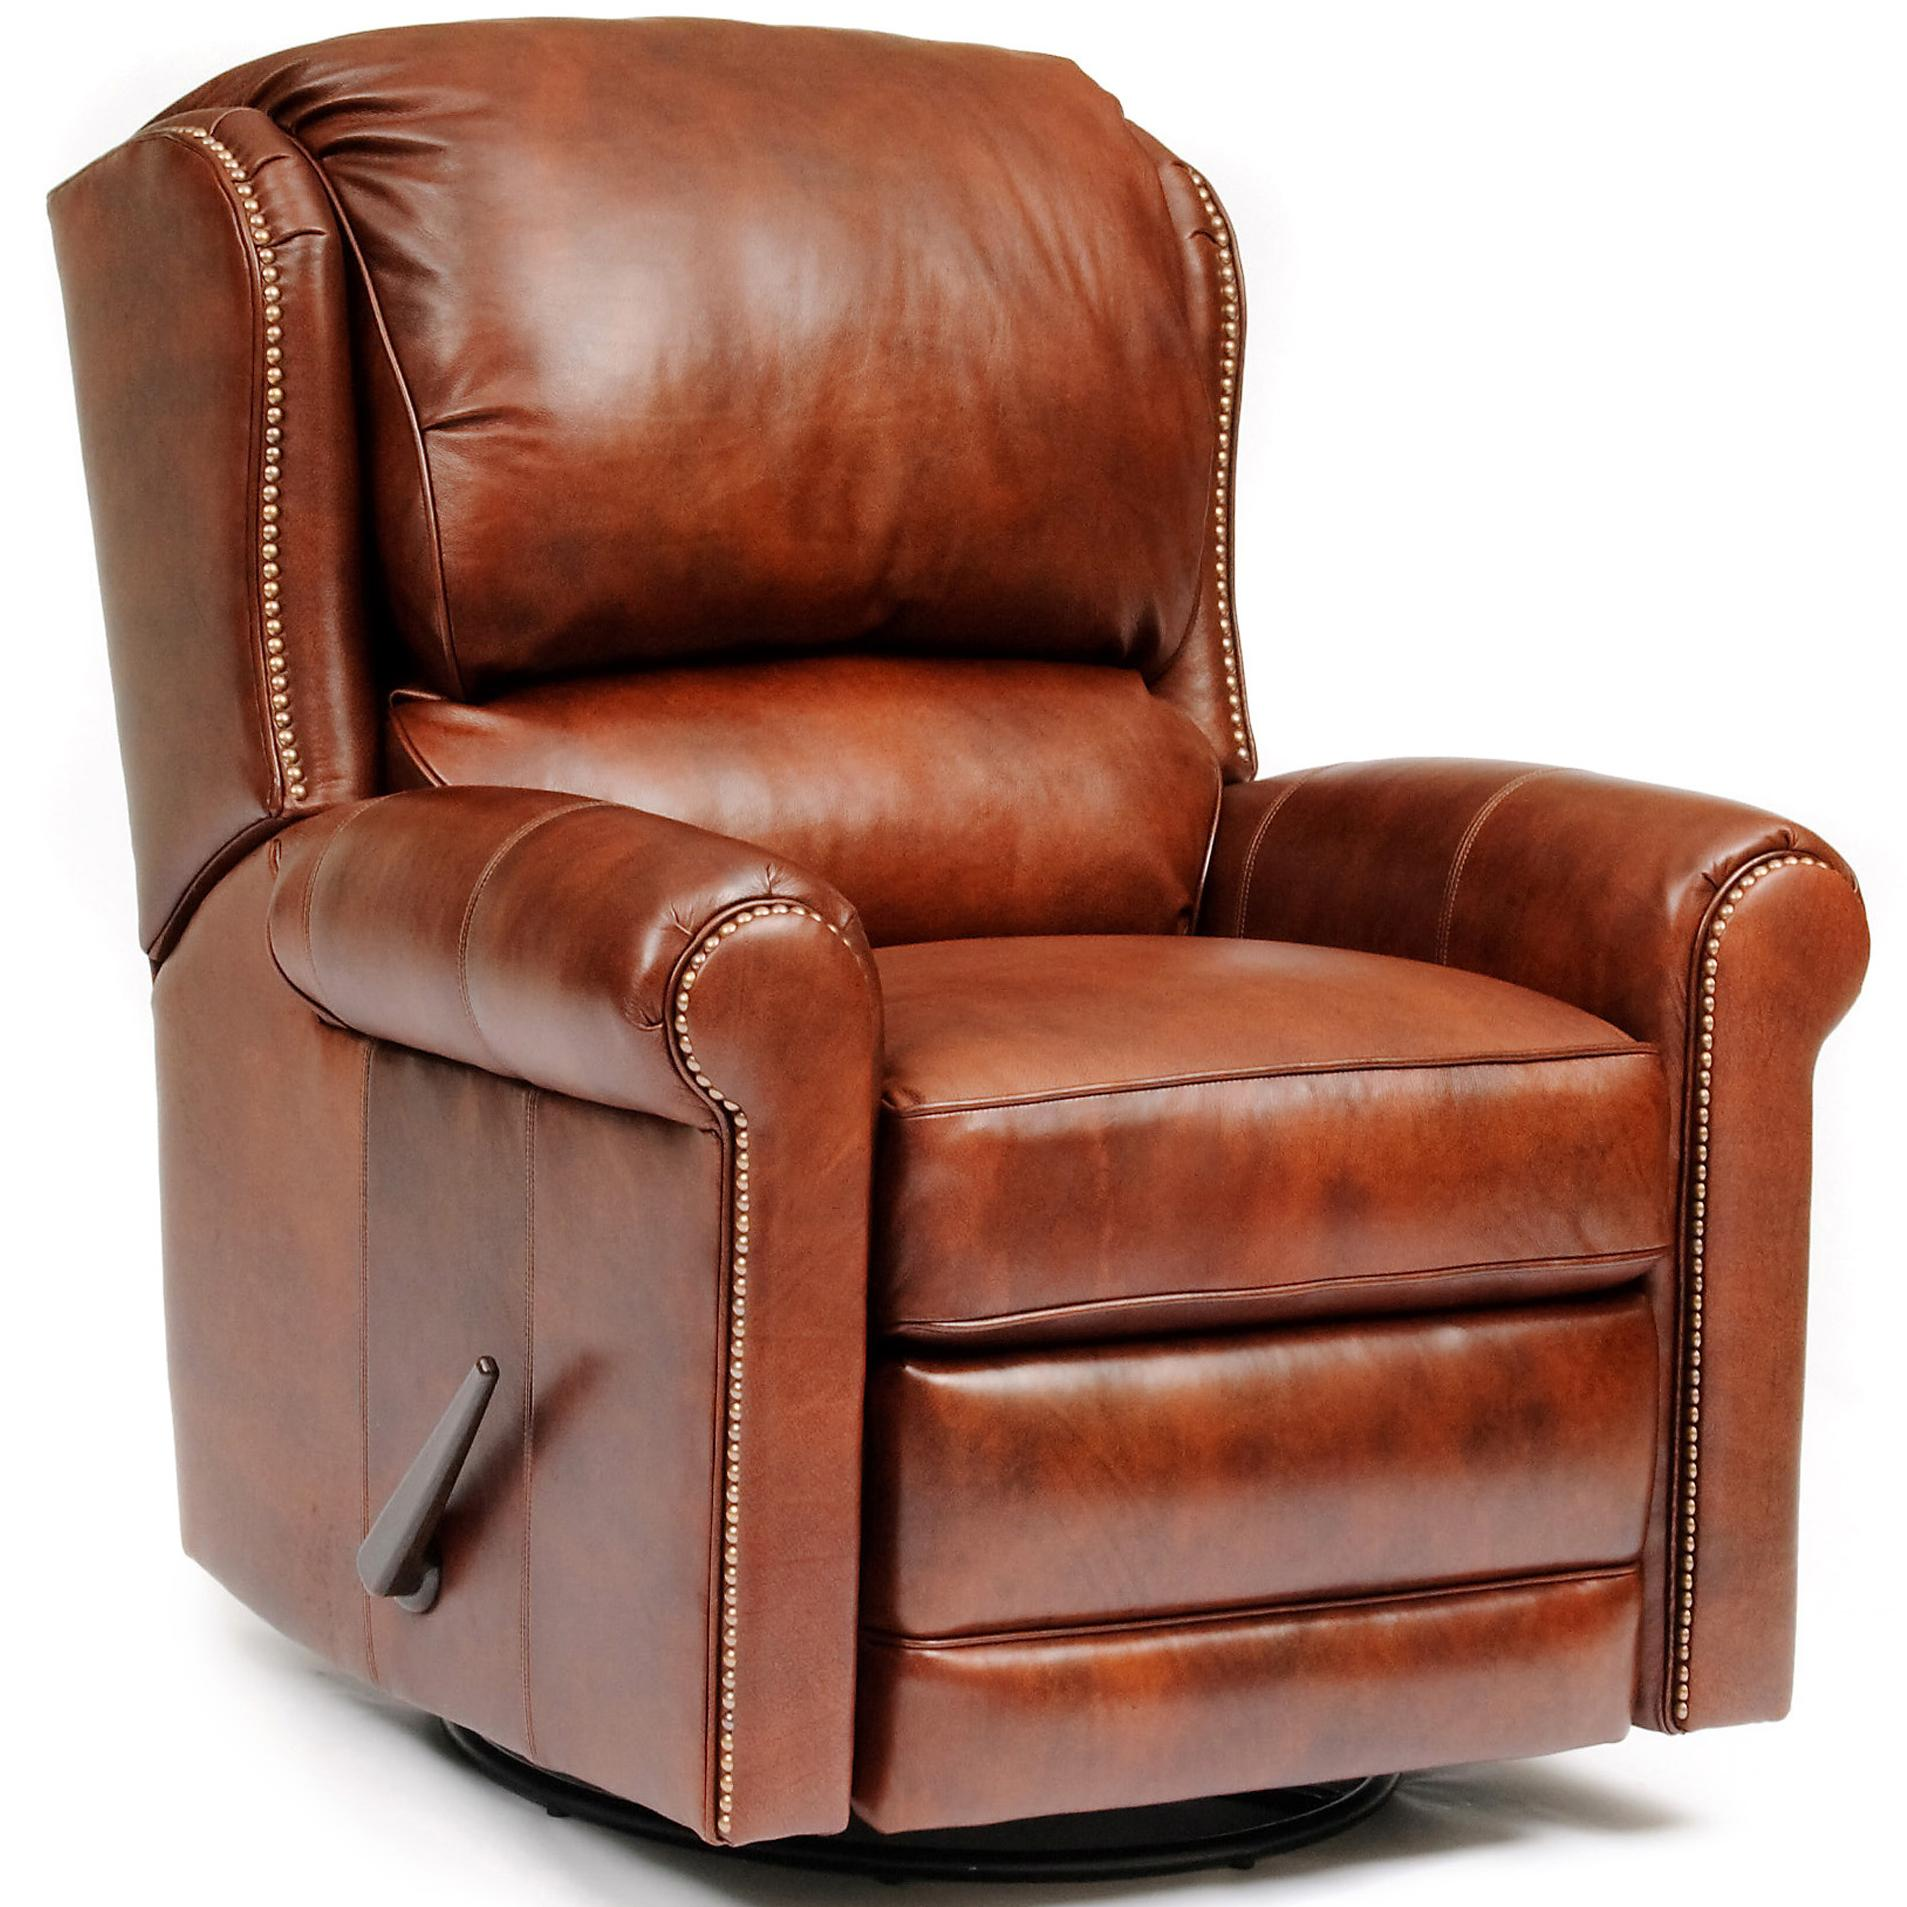 720L Casual Recliner  by Smith Brothers at Mueller Furniture